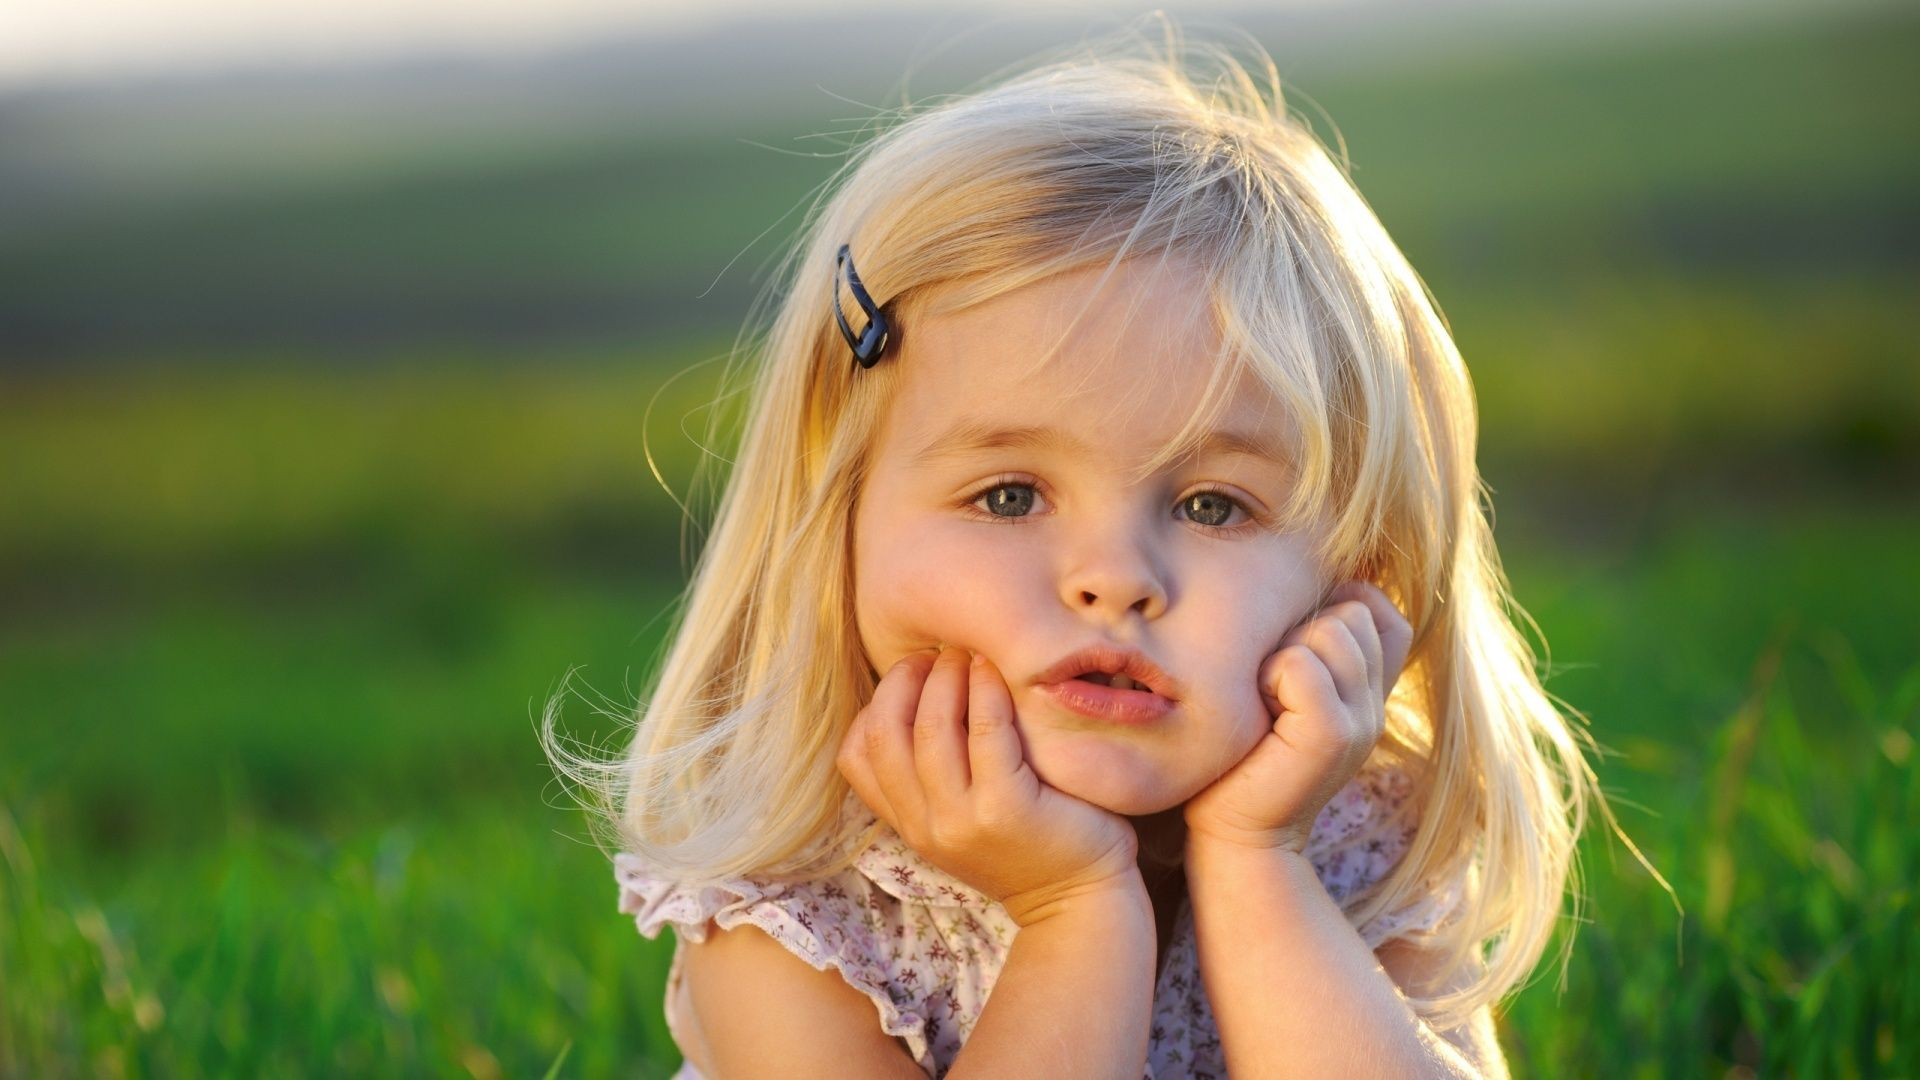 the most beautiful children in the world | wallpaper and girl wallpaper